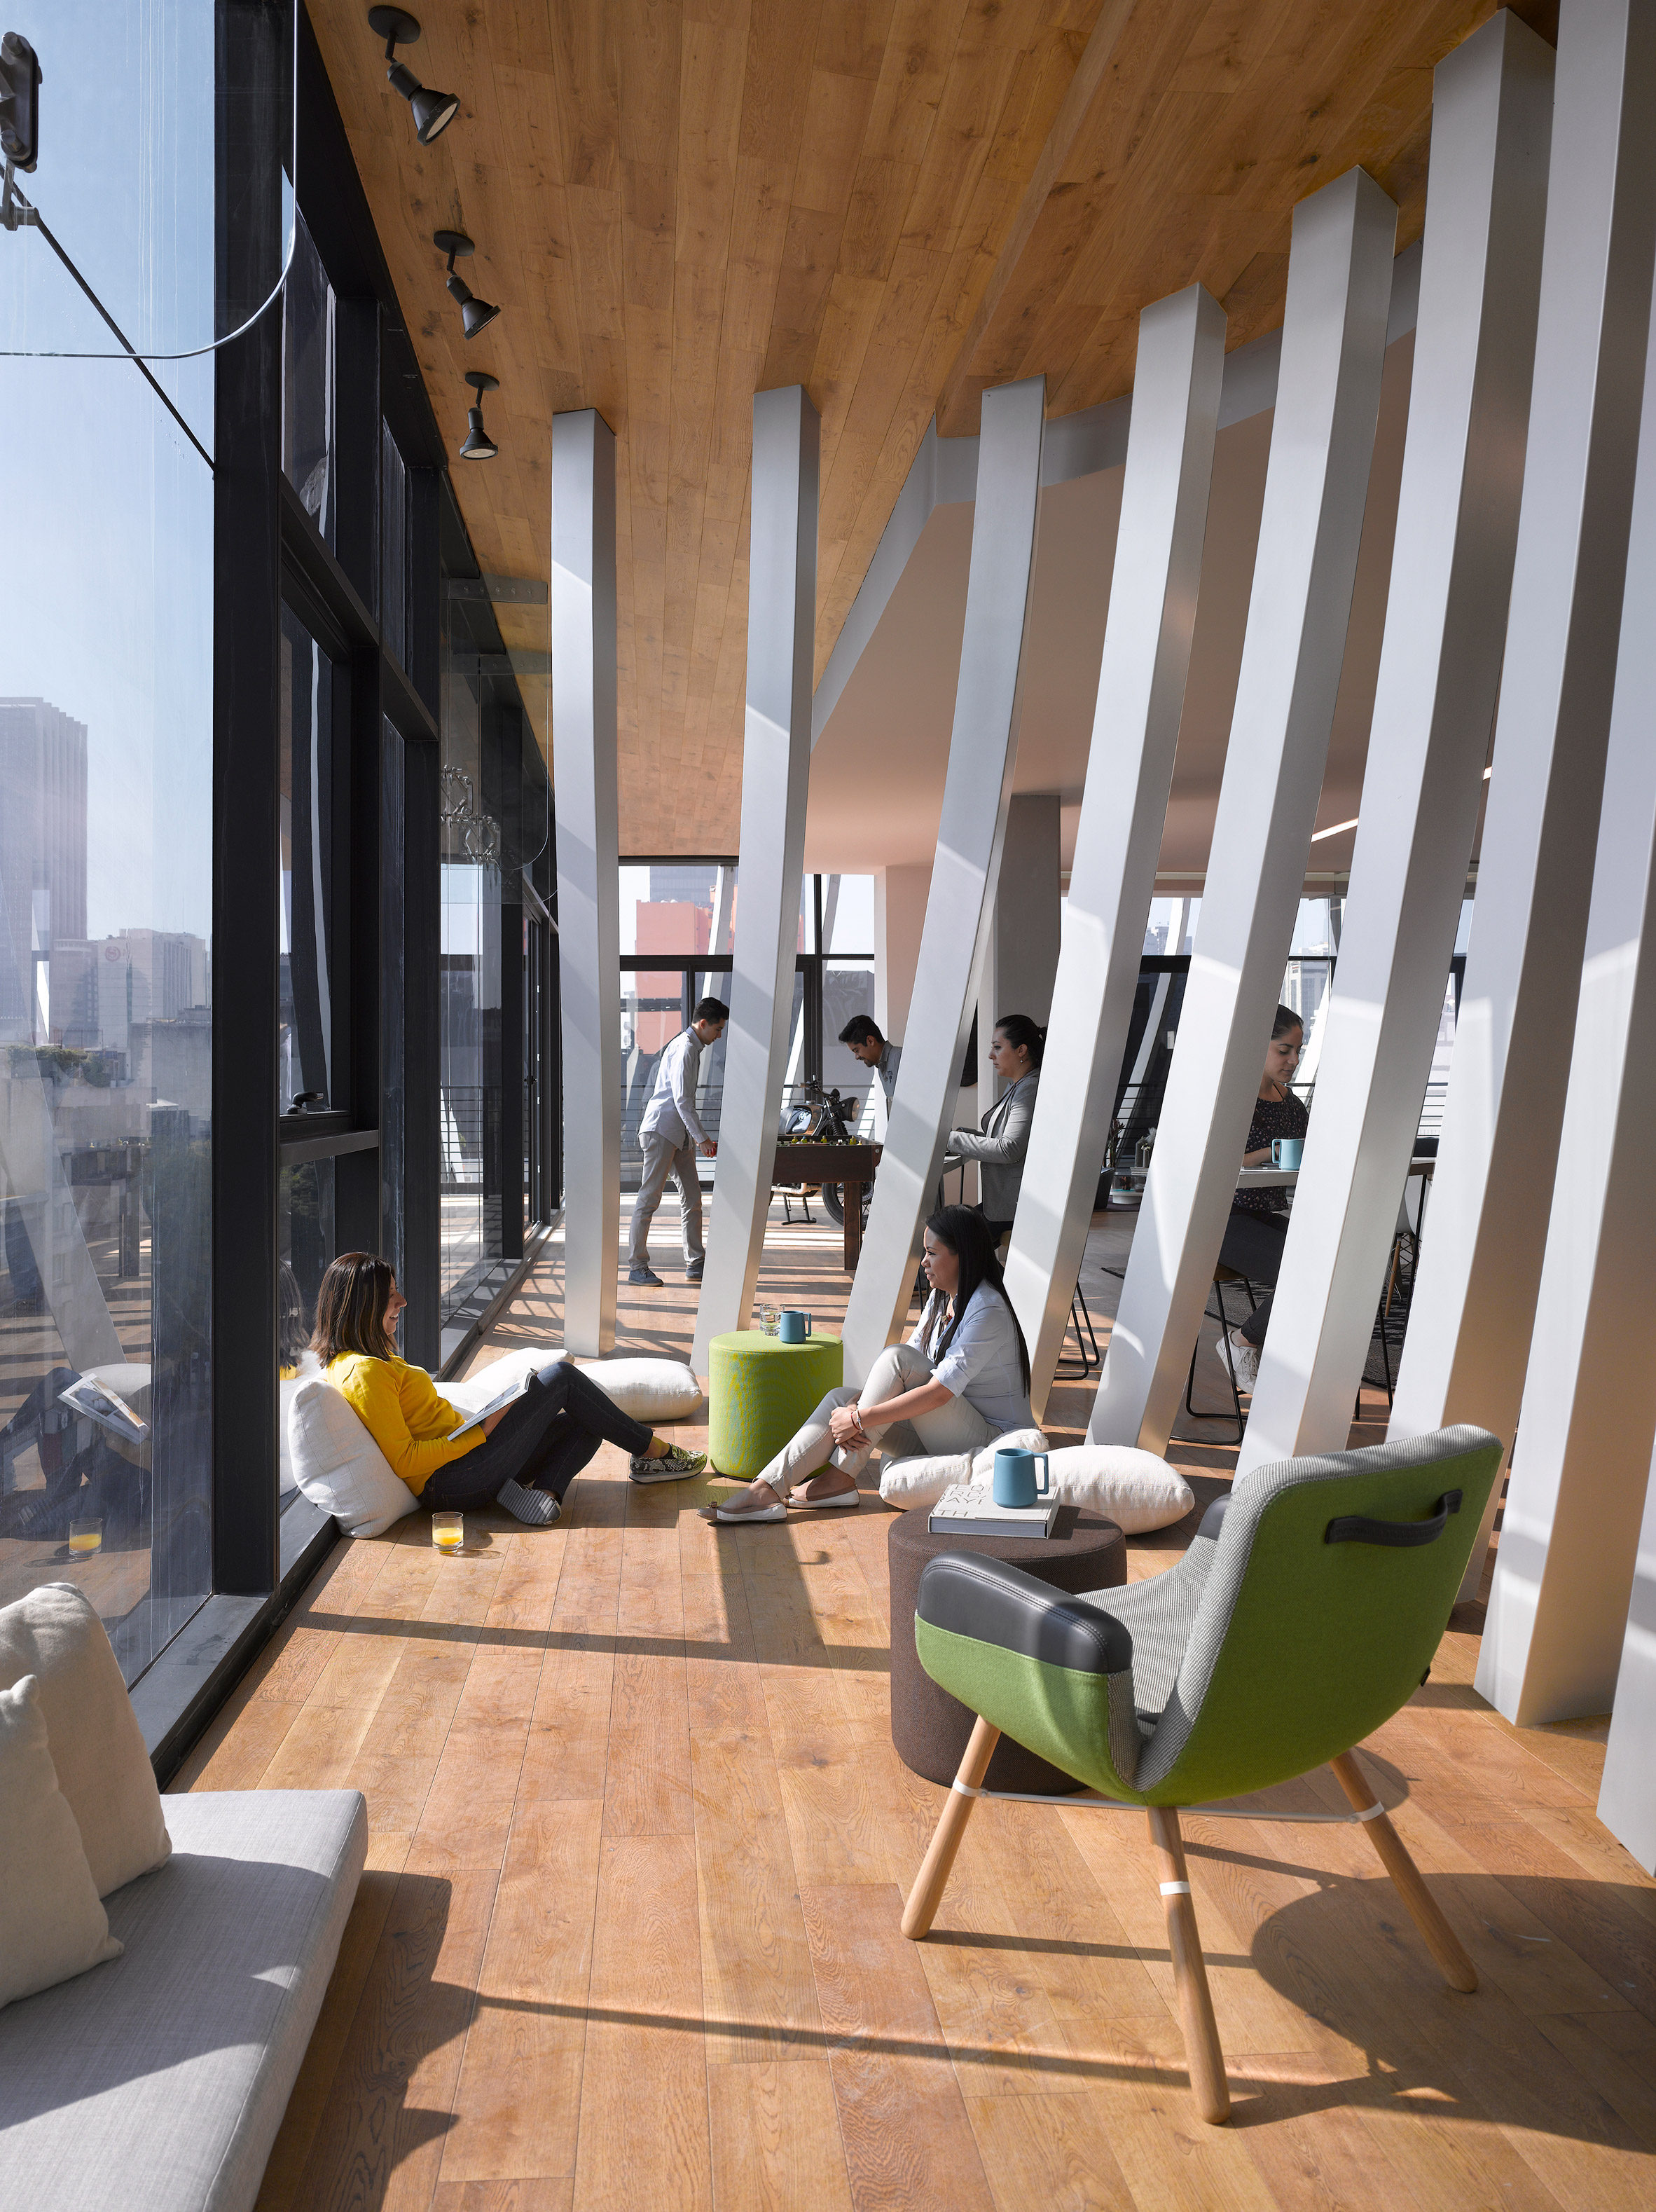 Threads by Belzberg Architects